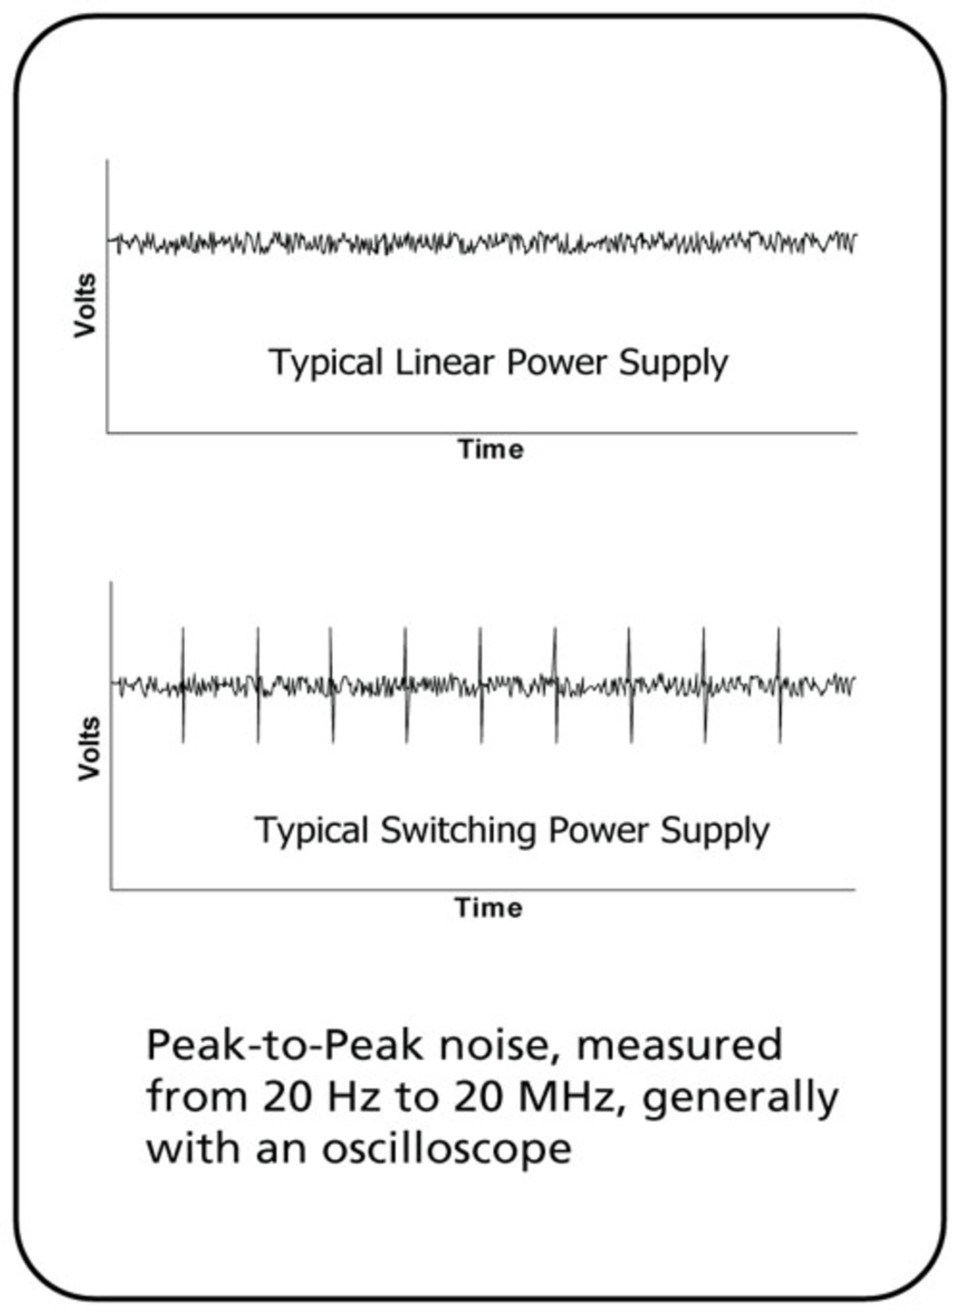 Considerations When Specifying a DC Power Supply